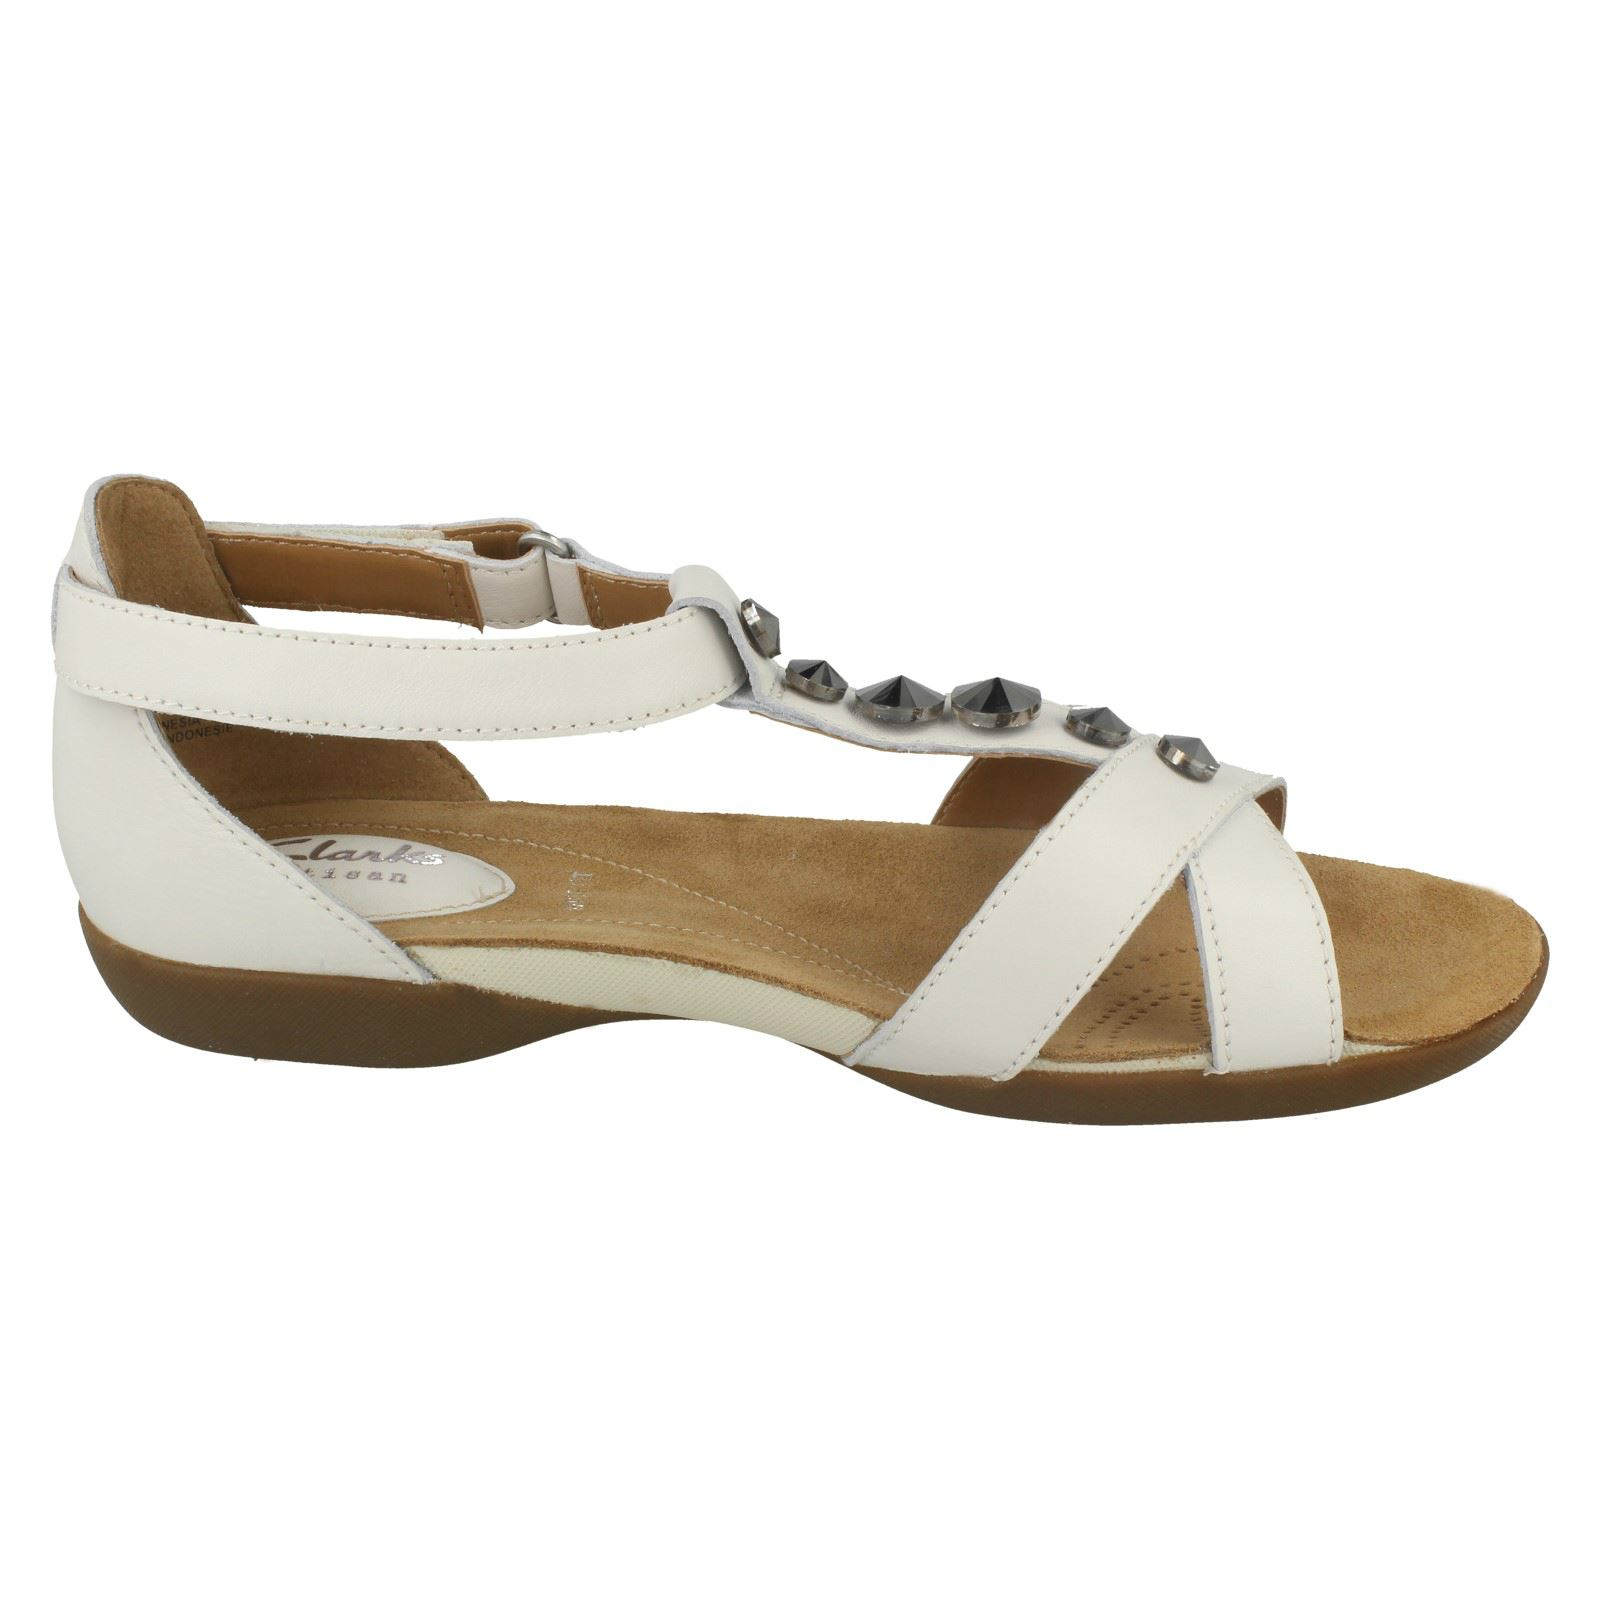 9d42ff92bcec Ladies-Clarks-Raffi-Scent-T-Bar-Flat-Sandals thumbnail